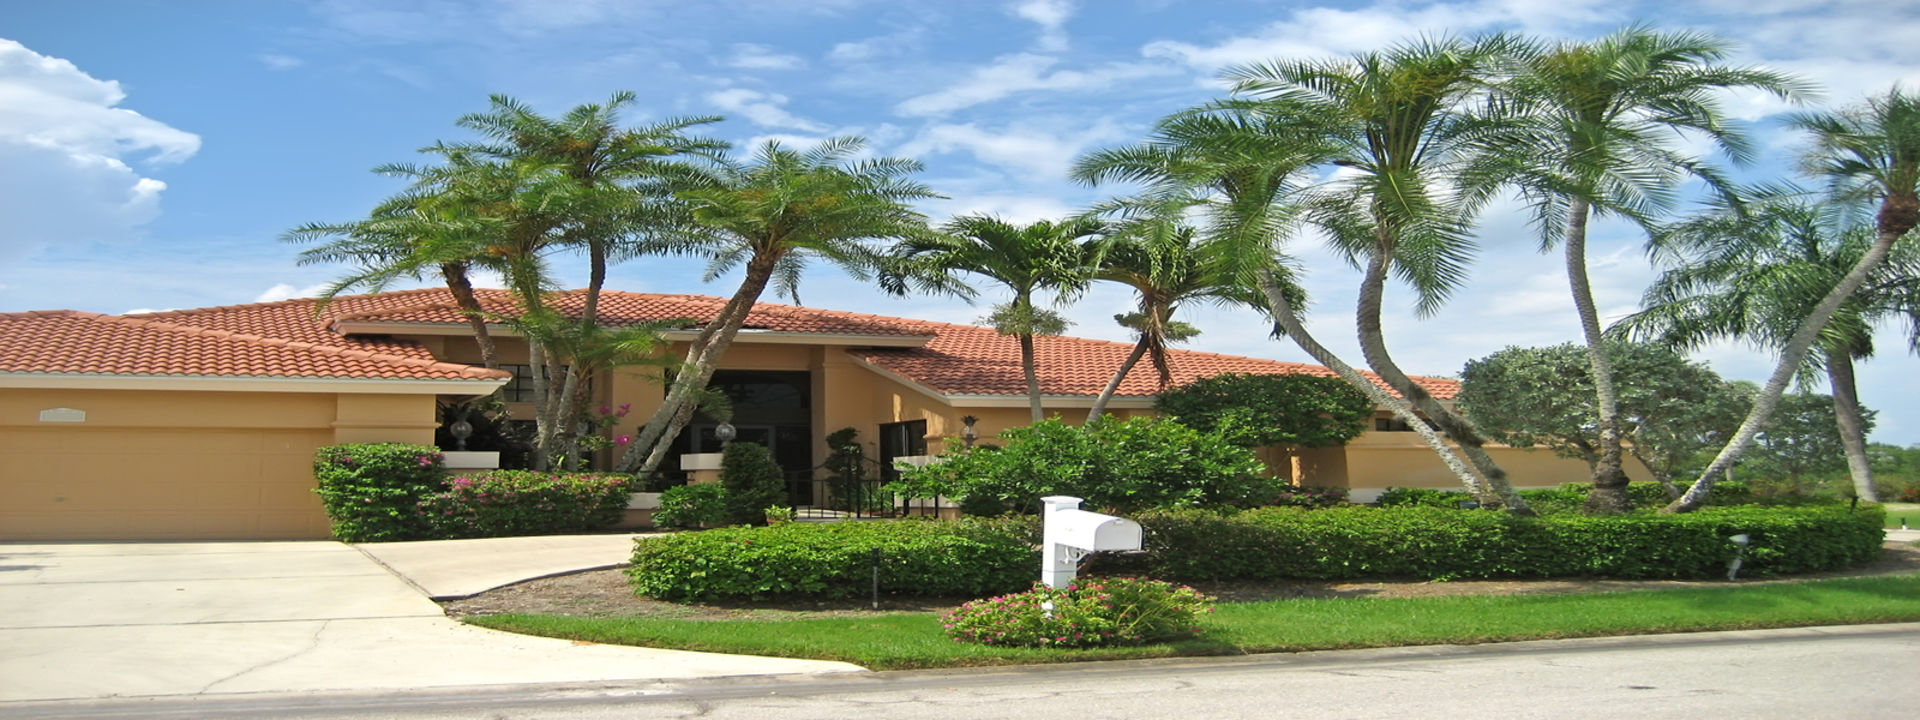 Hammock Reserve Homes for sale in Delray Beach